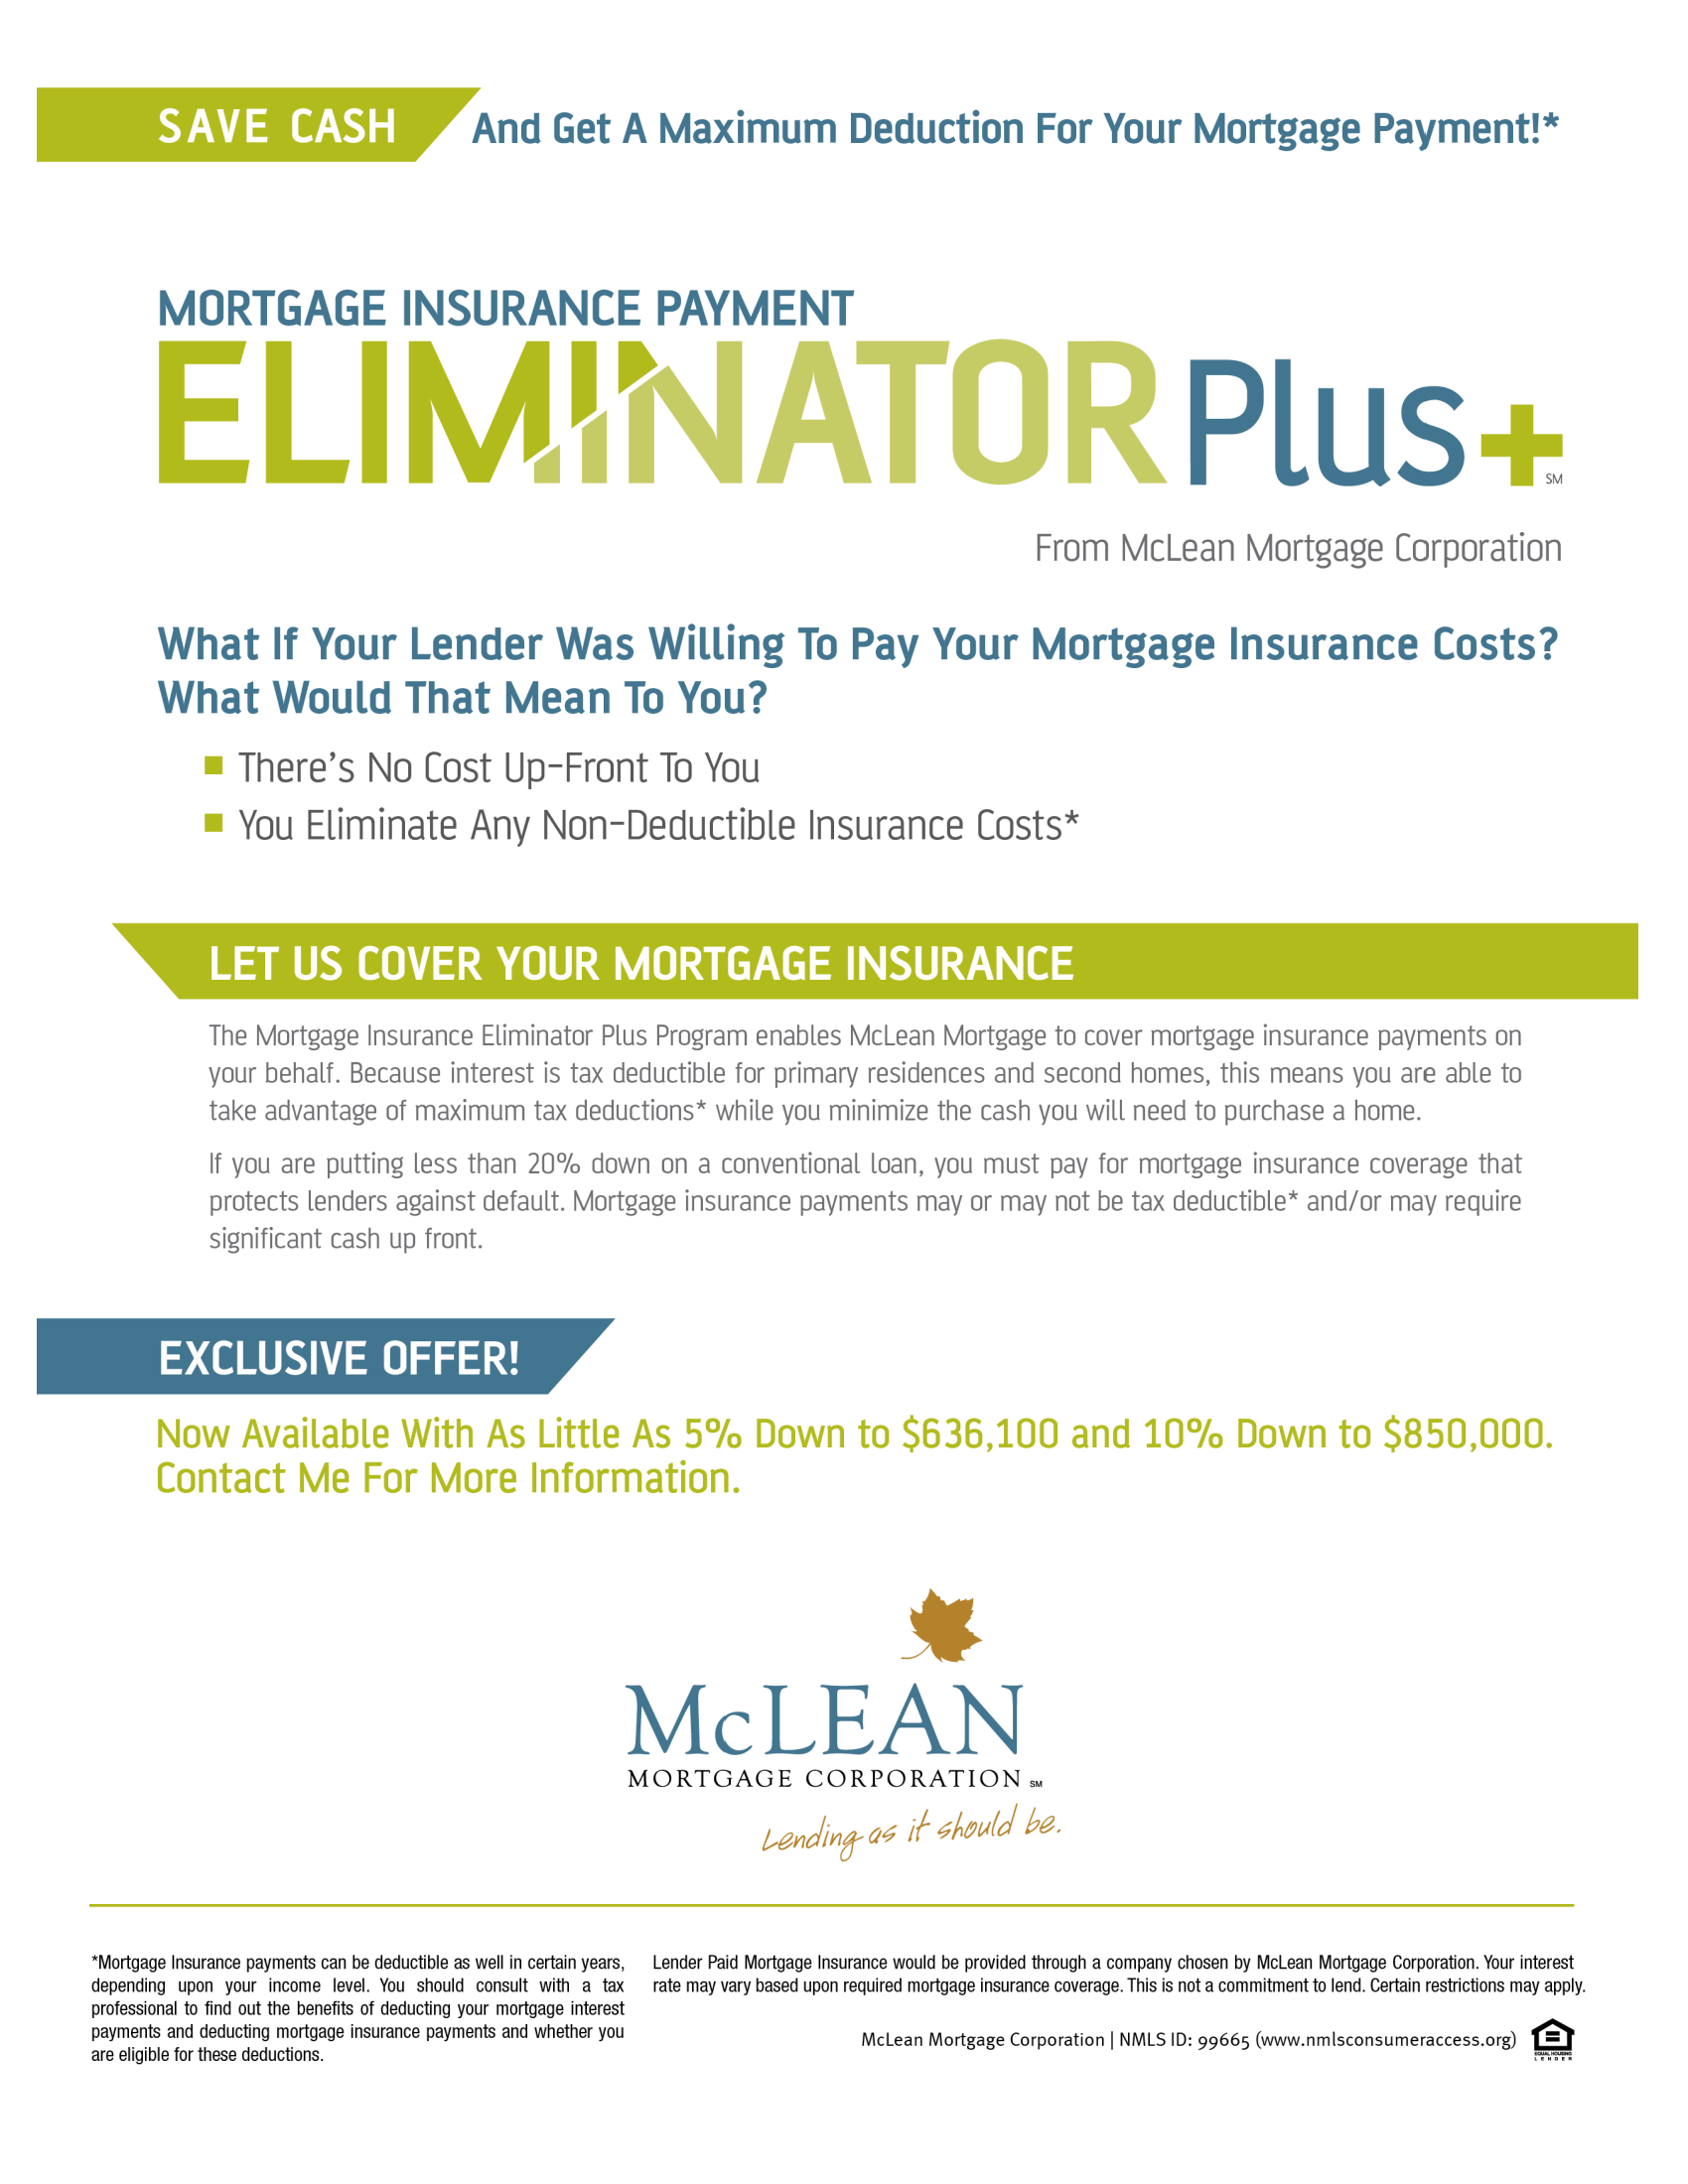 Mortgage Insurance Payment Eliminator Plus wExclusive Offer_Flyer.png